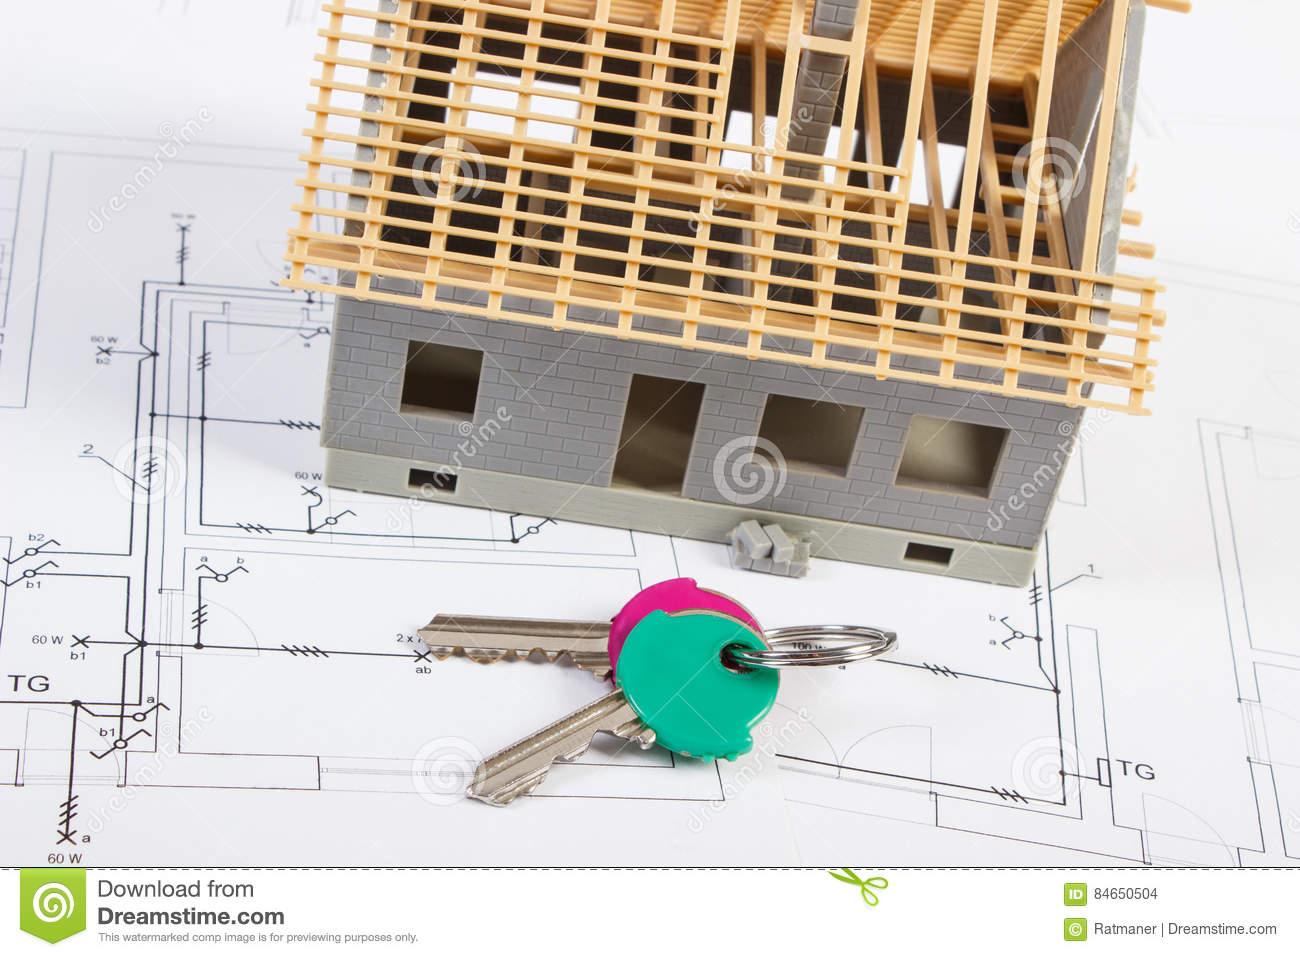 hight resolution of home keys and small house under construction lying on electrical drawings for project concept of building home